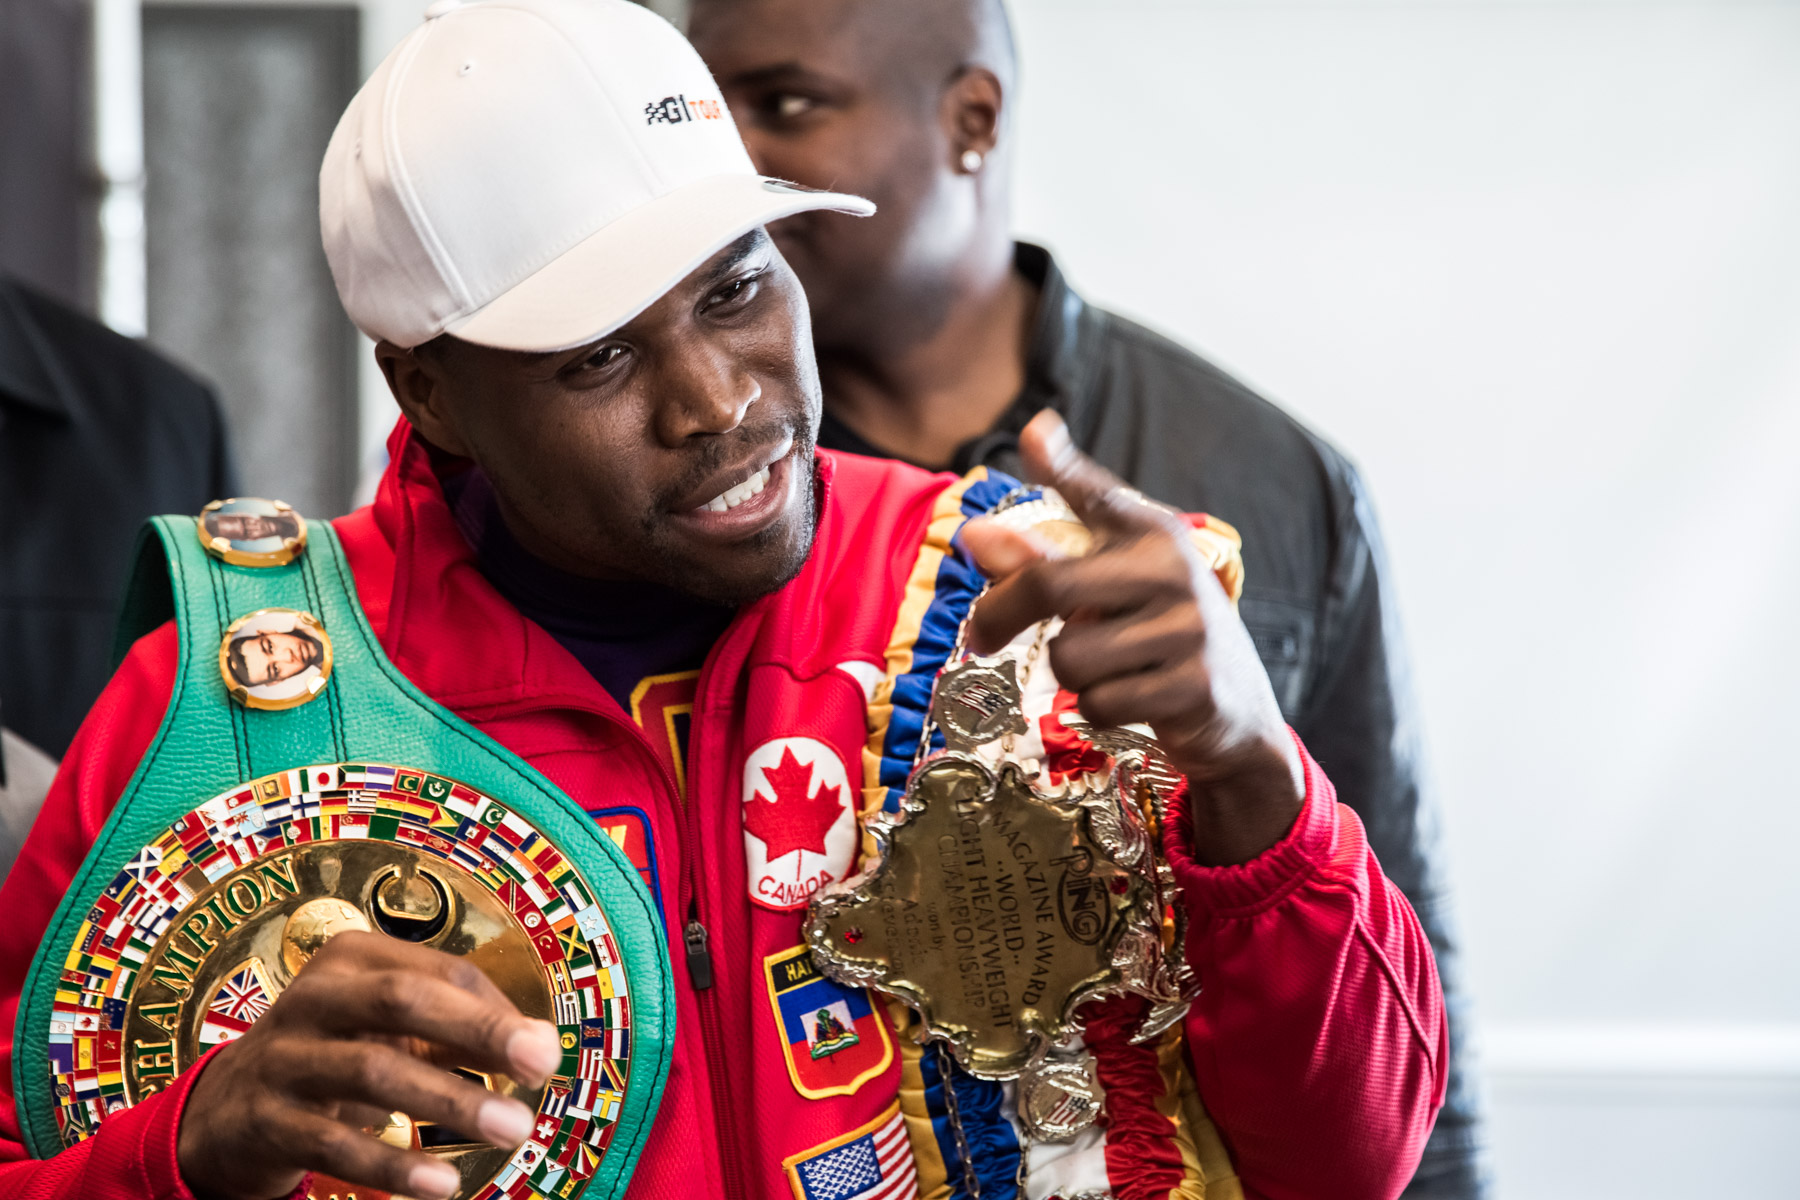 Stevenson Adonis born 22 September 1977 best known as Adonis Stevenson is a Haitian Canadian professional boxer He has held the WBC and lineal lightheavyweight